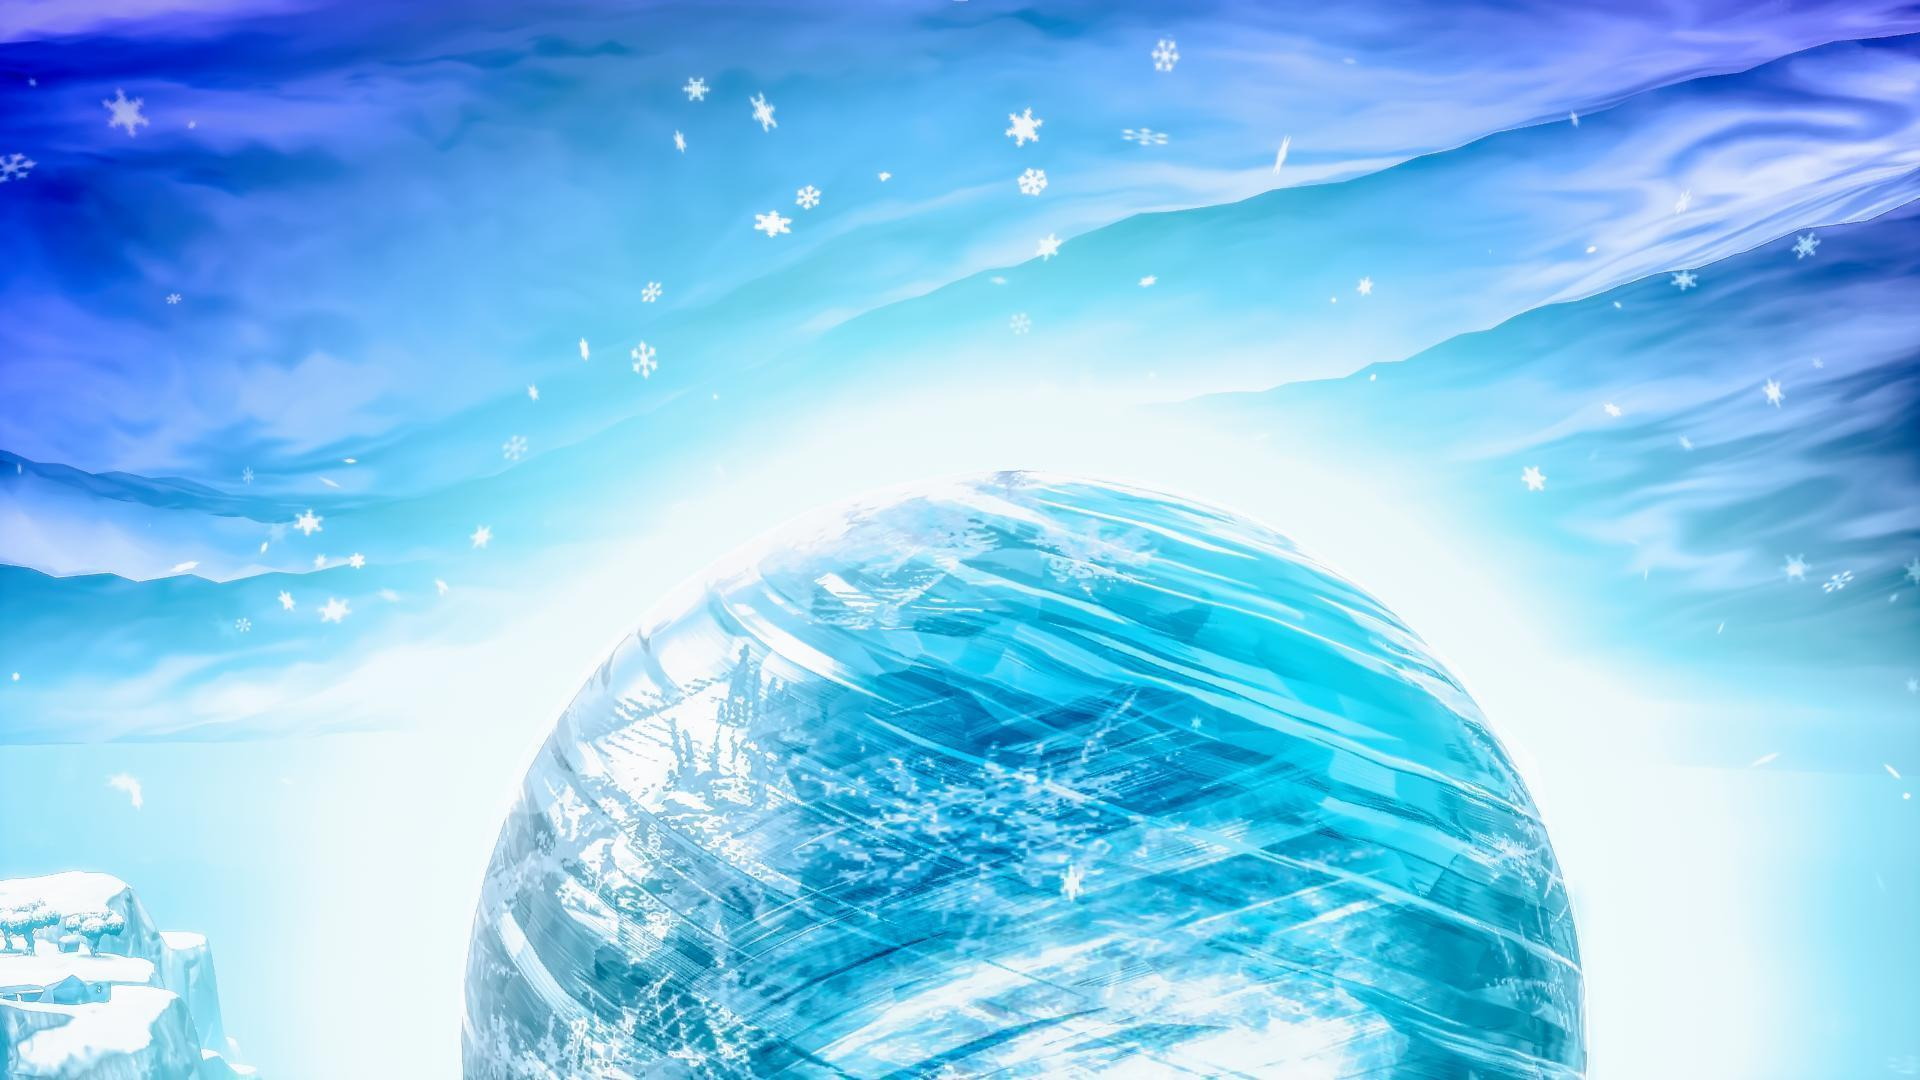 Leak: The Ice King Is INSIDE The Ice Sphere • L2pbomb